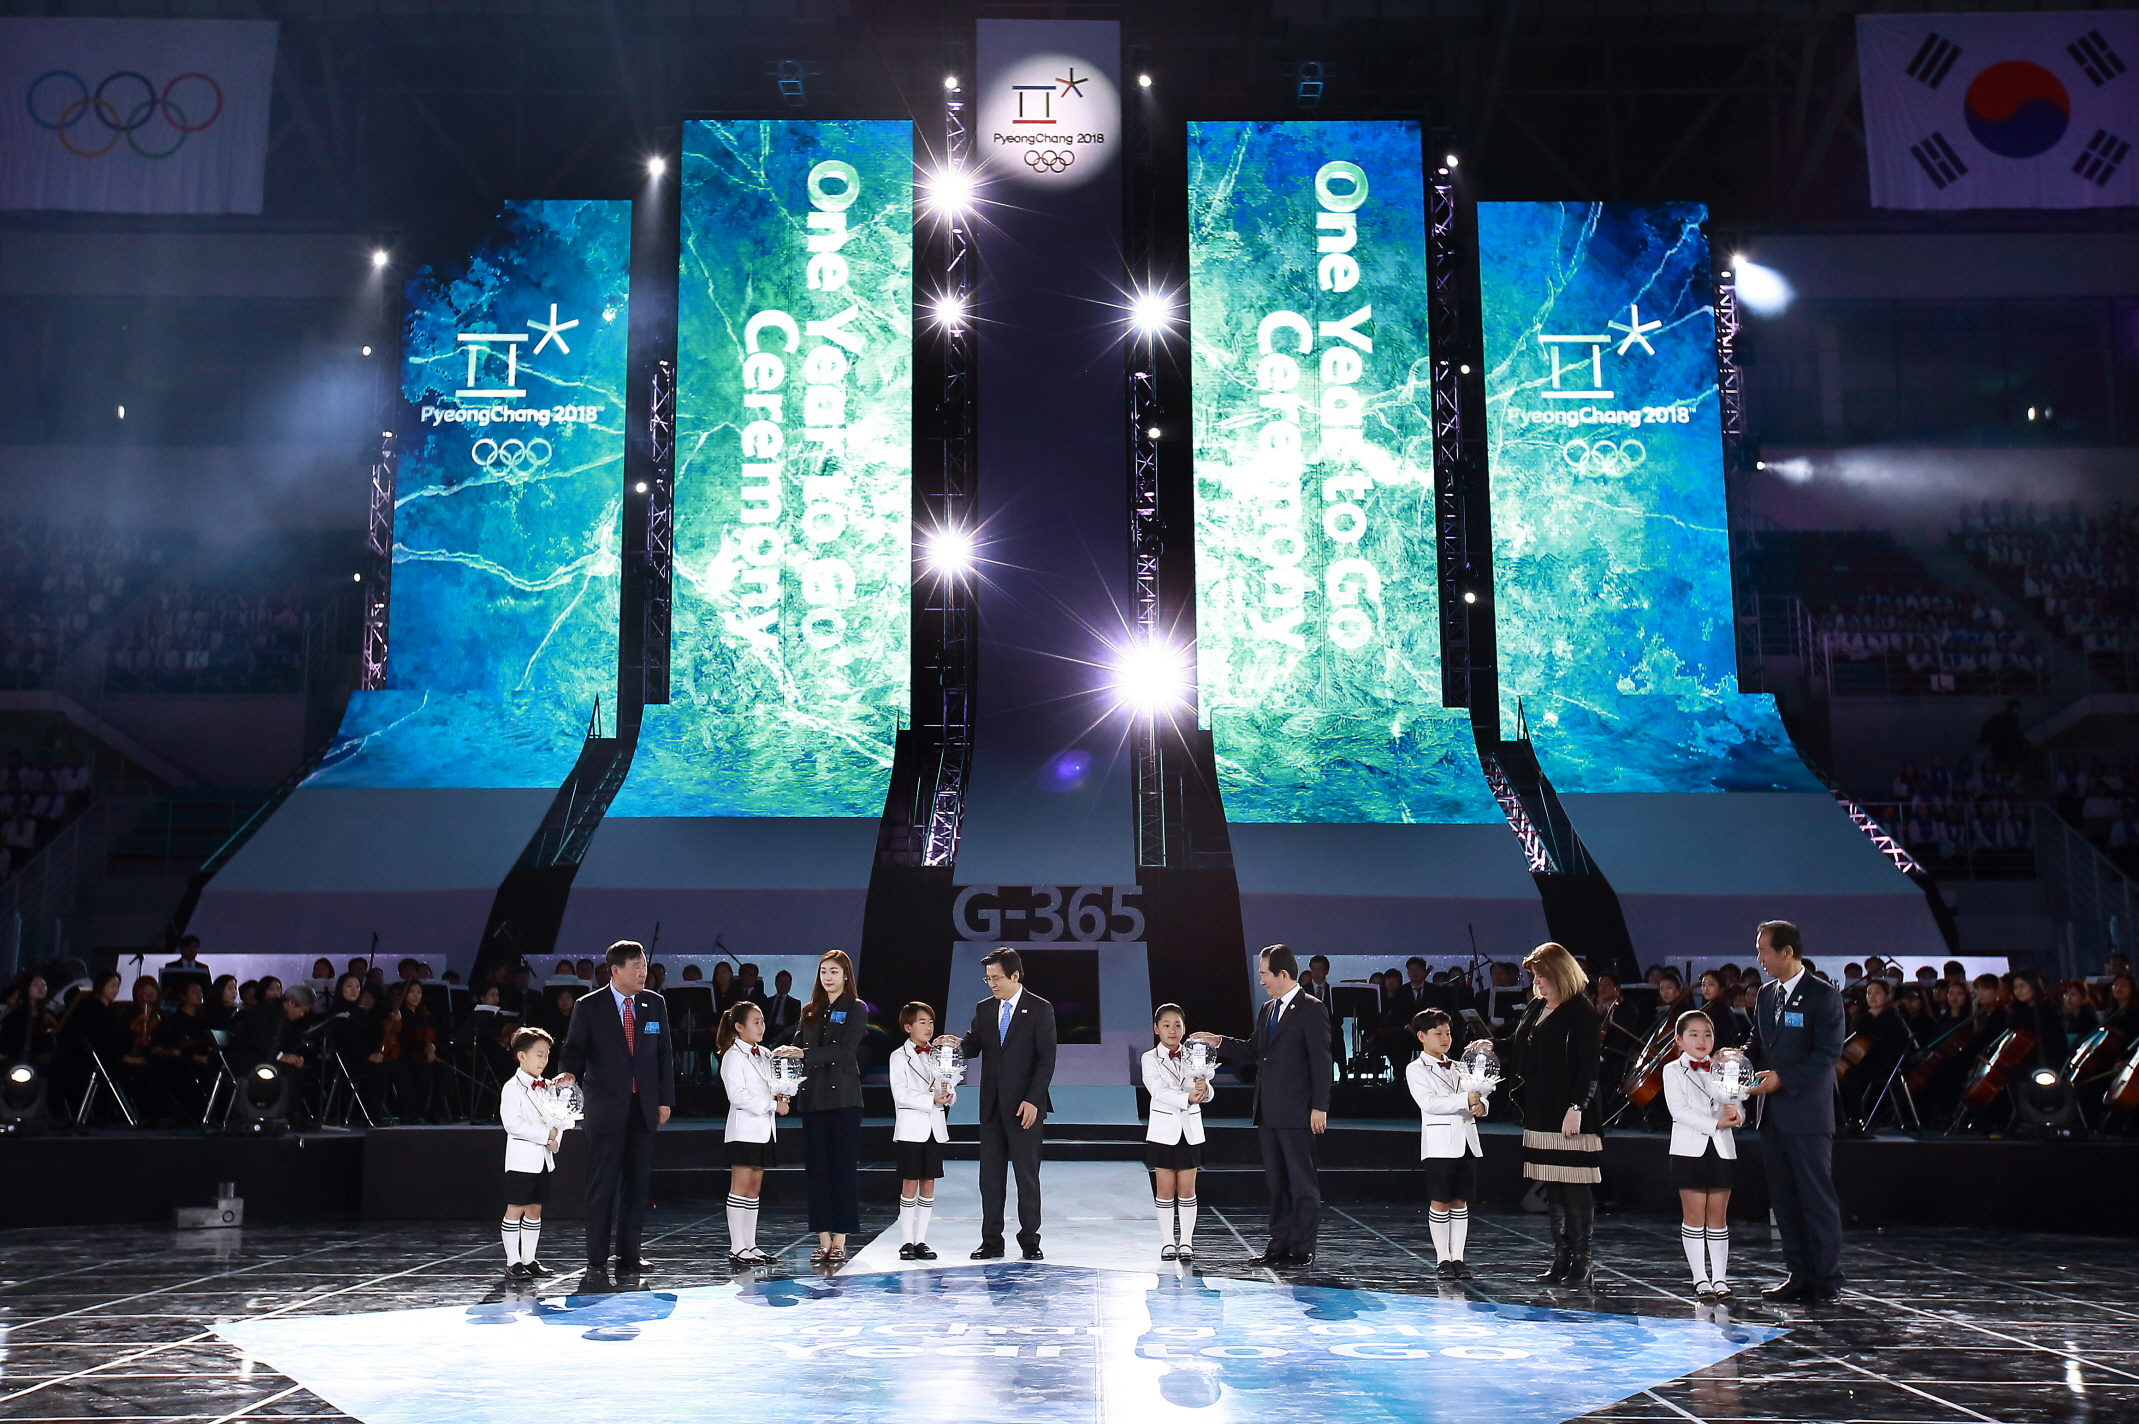 170209_PyeongChang 2018 Press Release_The Countdown has begun!_Photo 5